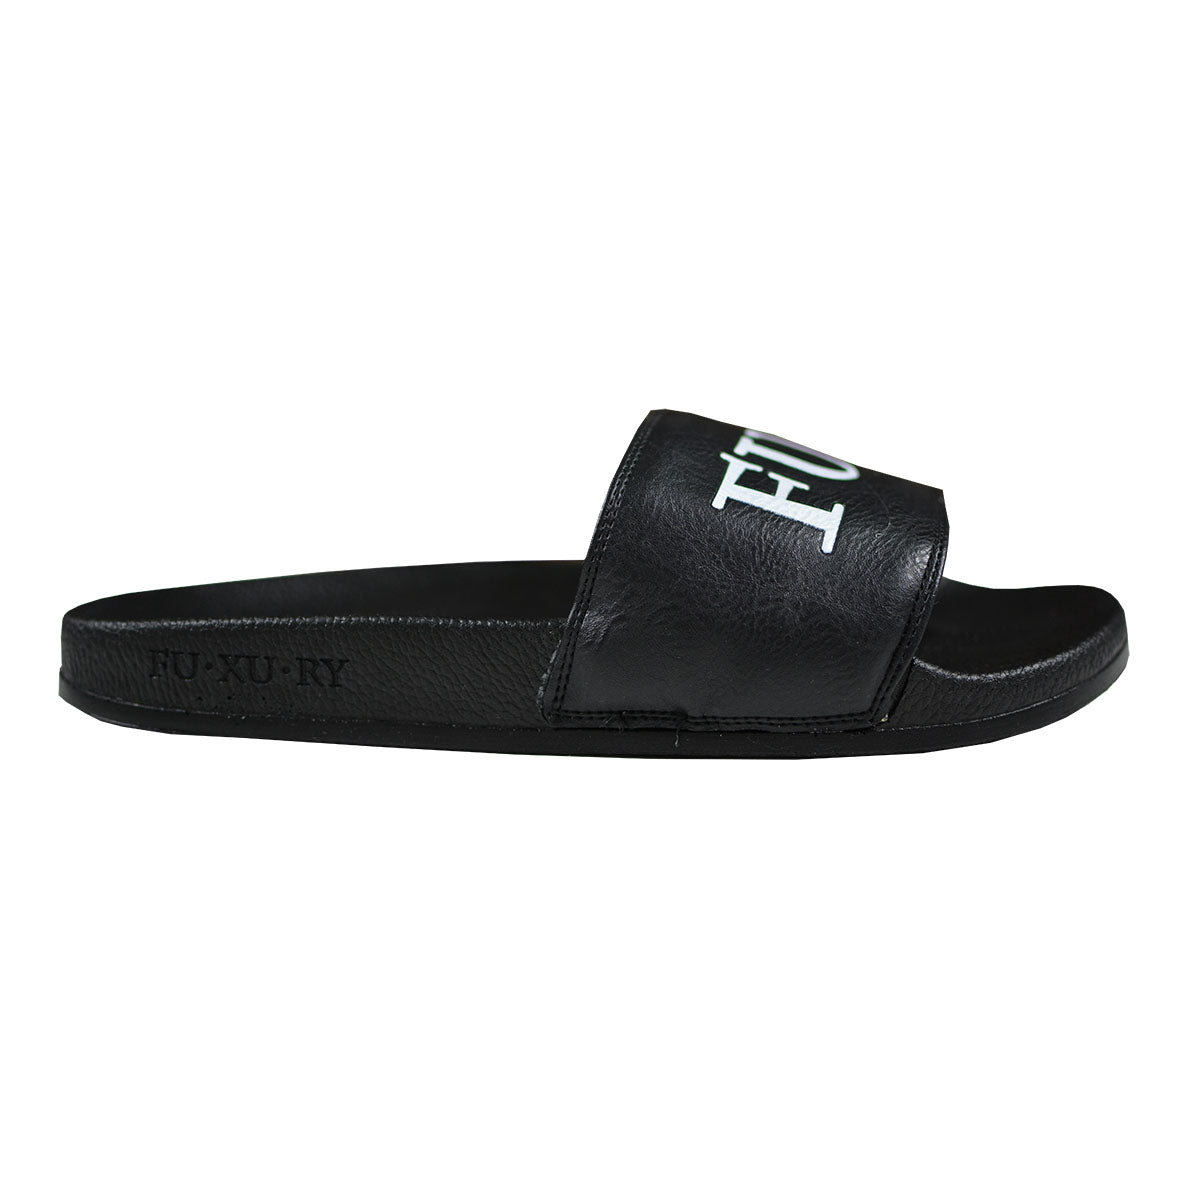 BLACK LOGO POOL SLIDES